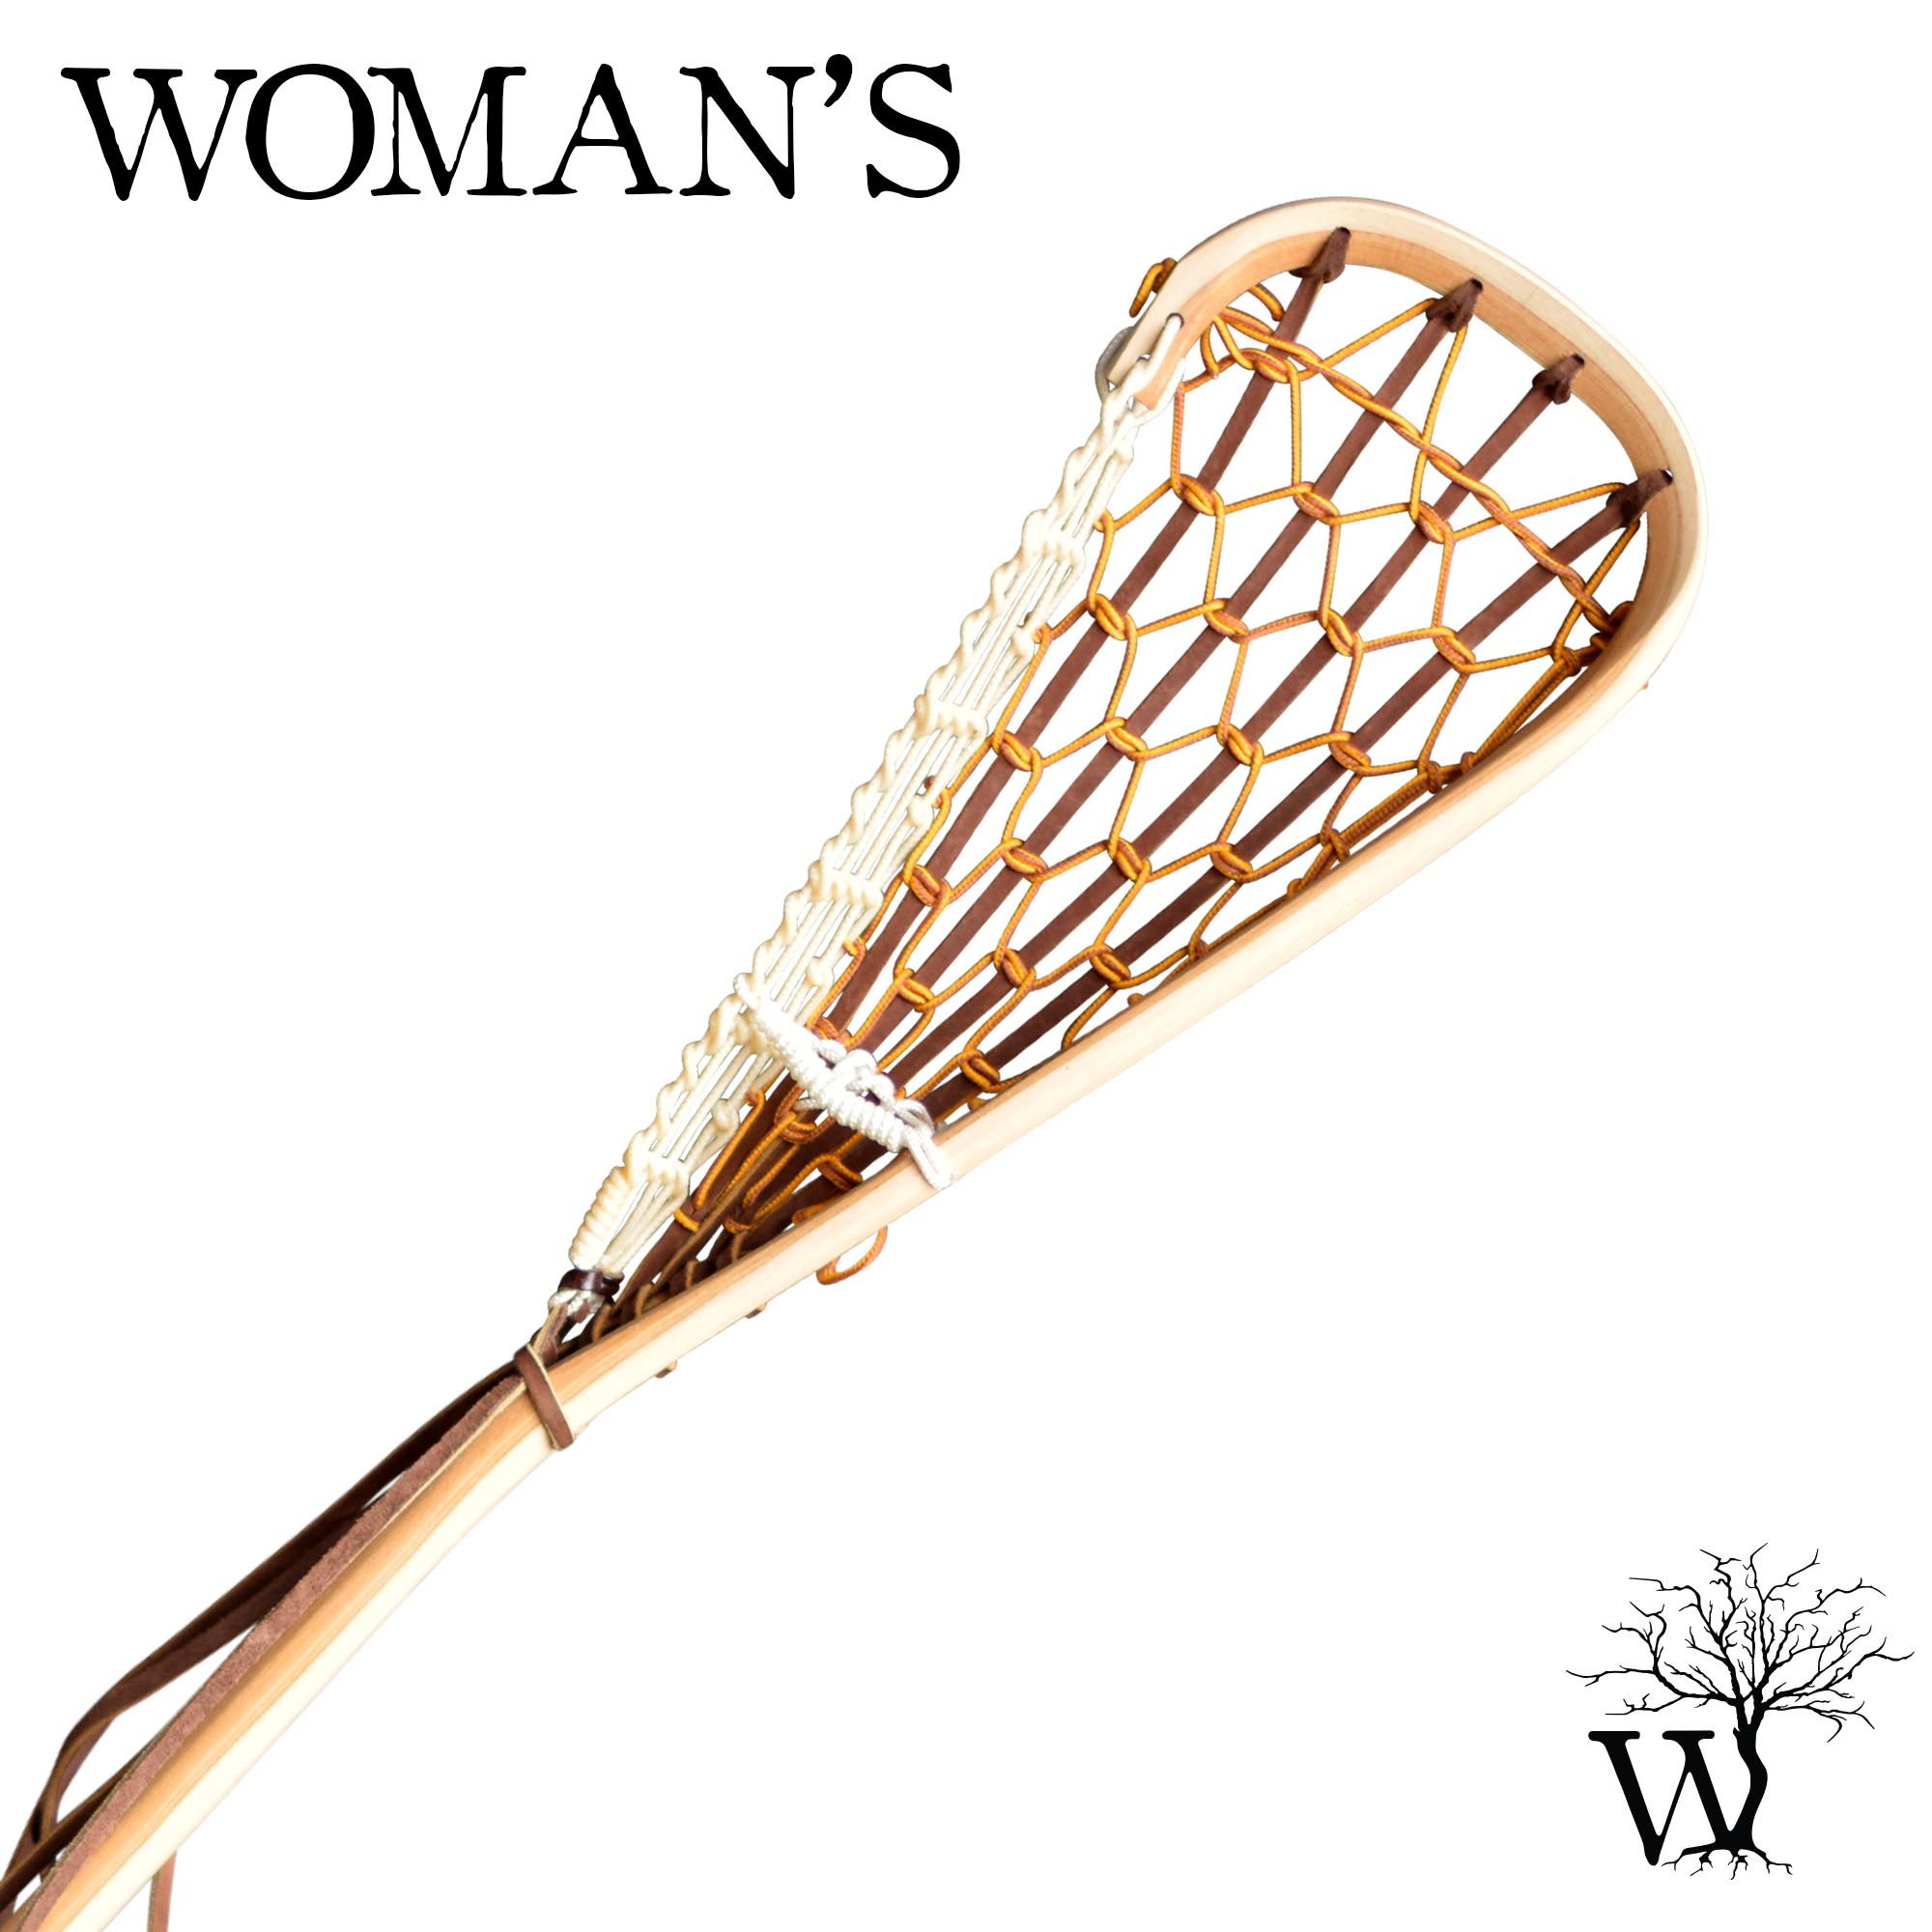 2000x2000 Wooden Field Lacrosse Stick, Native Indian Traditional Stick